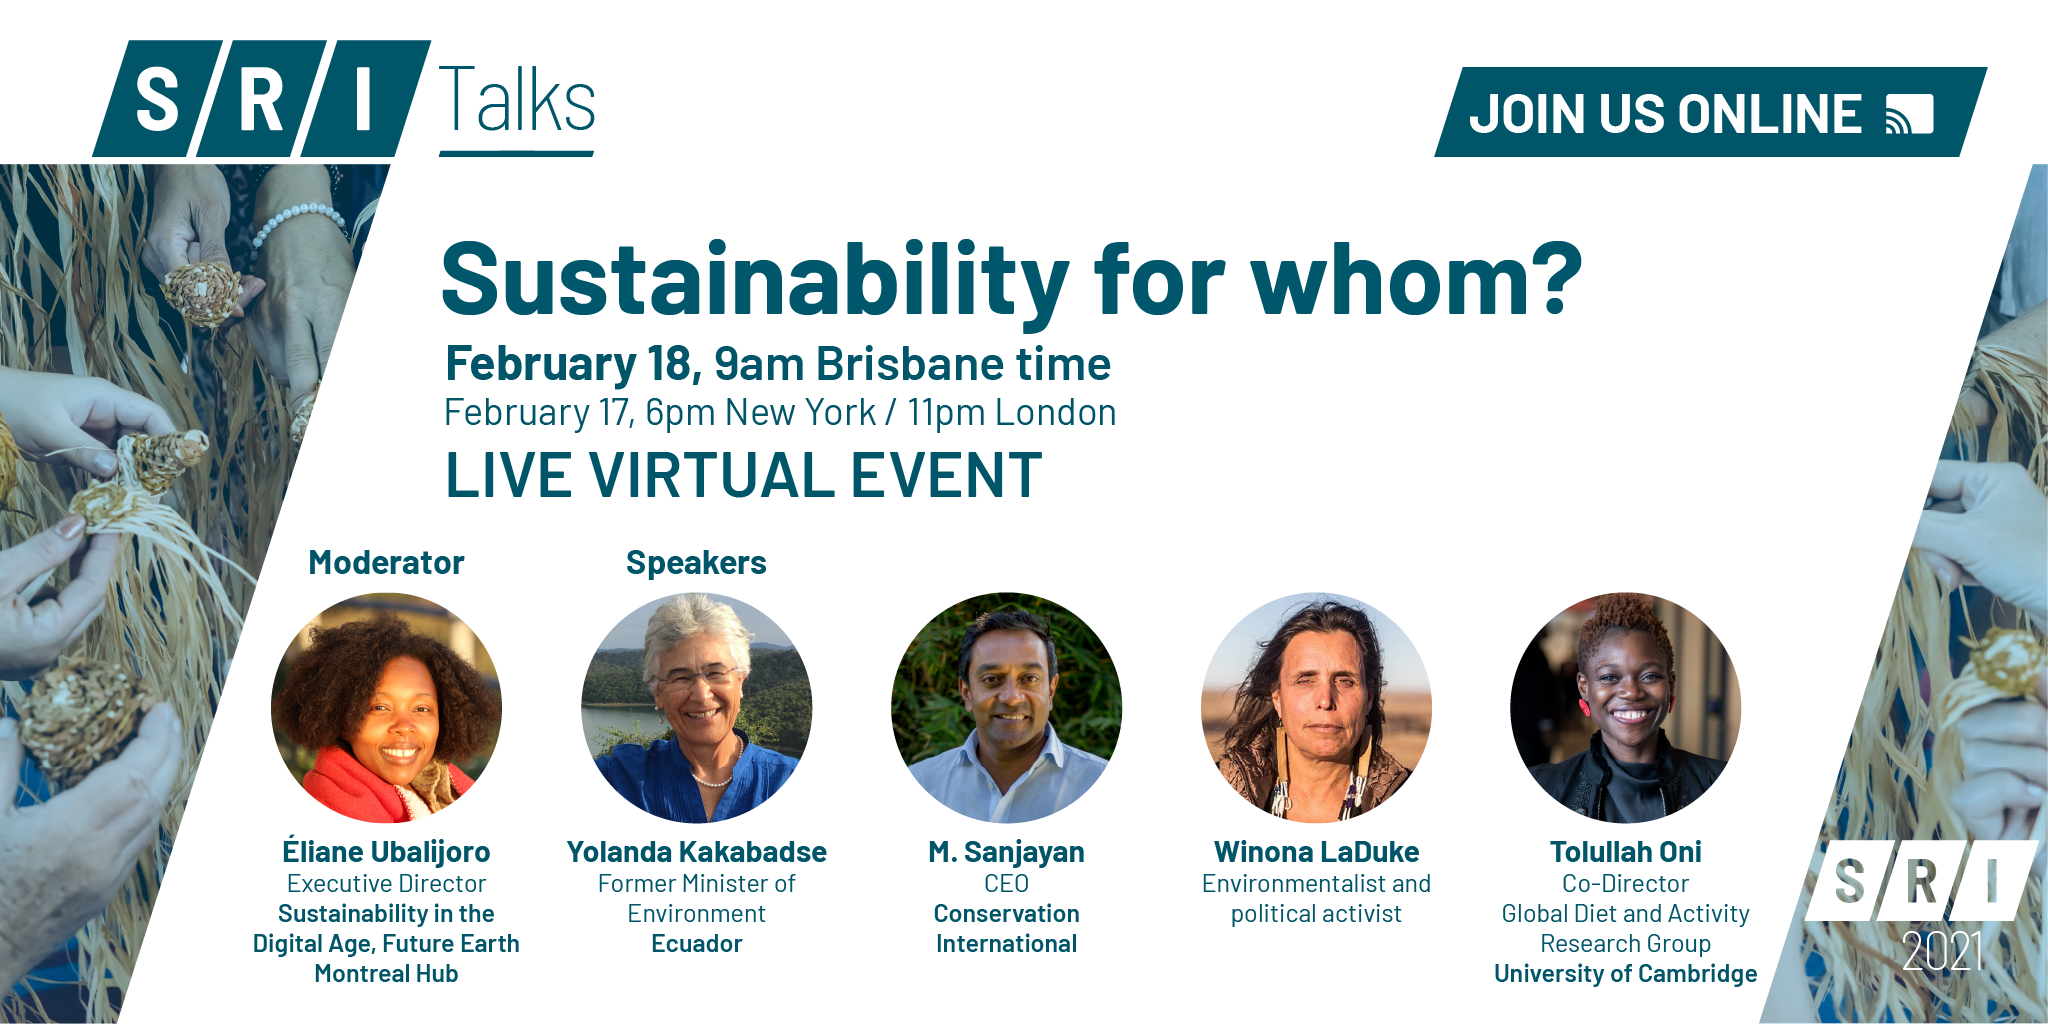 SRI Talks: Sustainability for Whom?